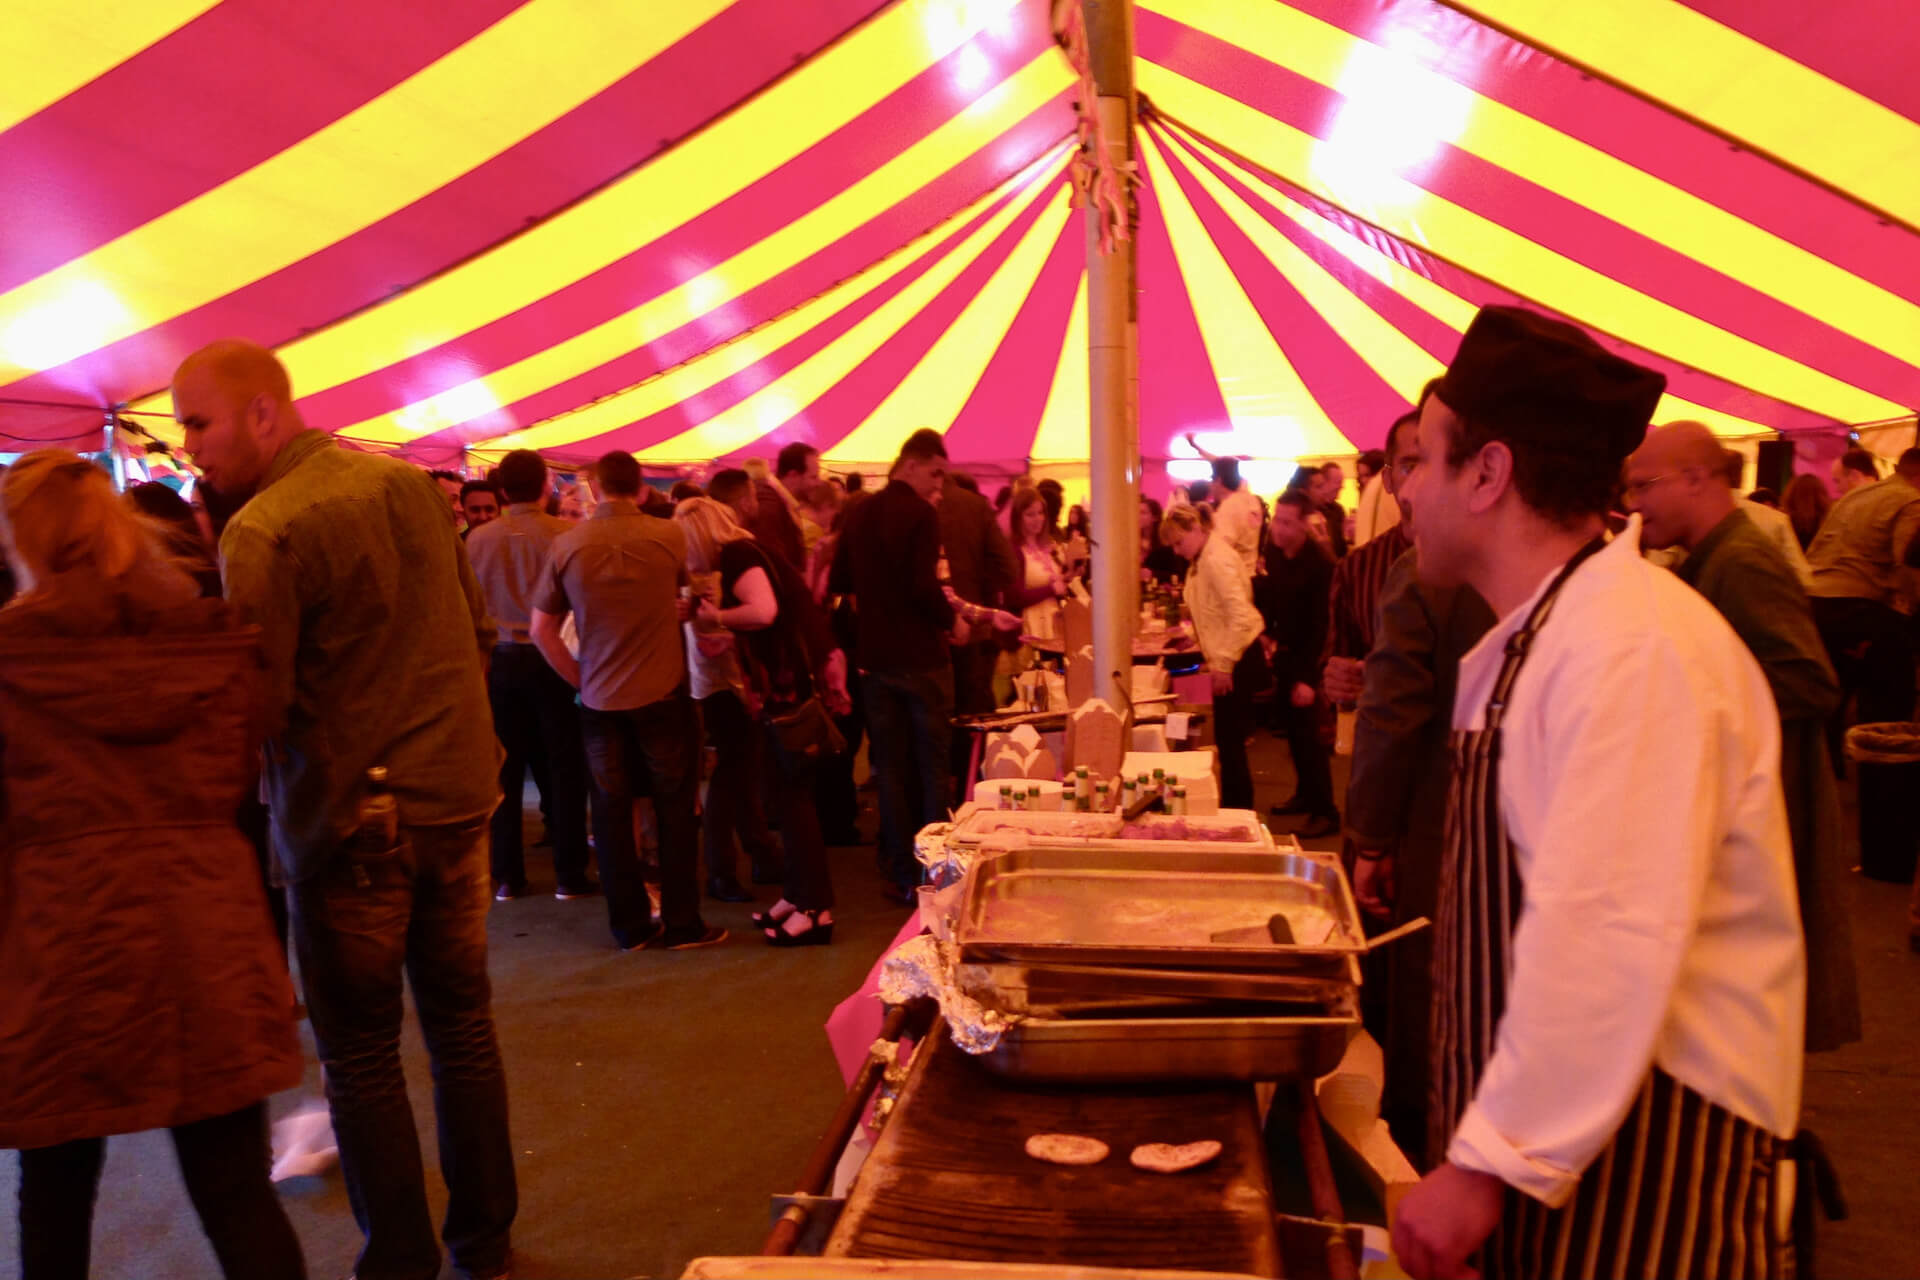 company events and festivals suplier